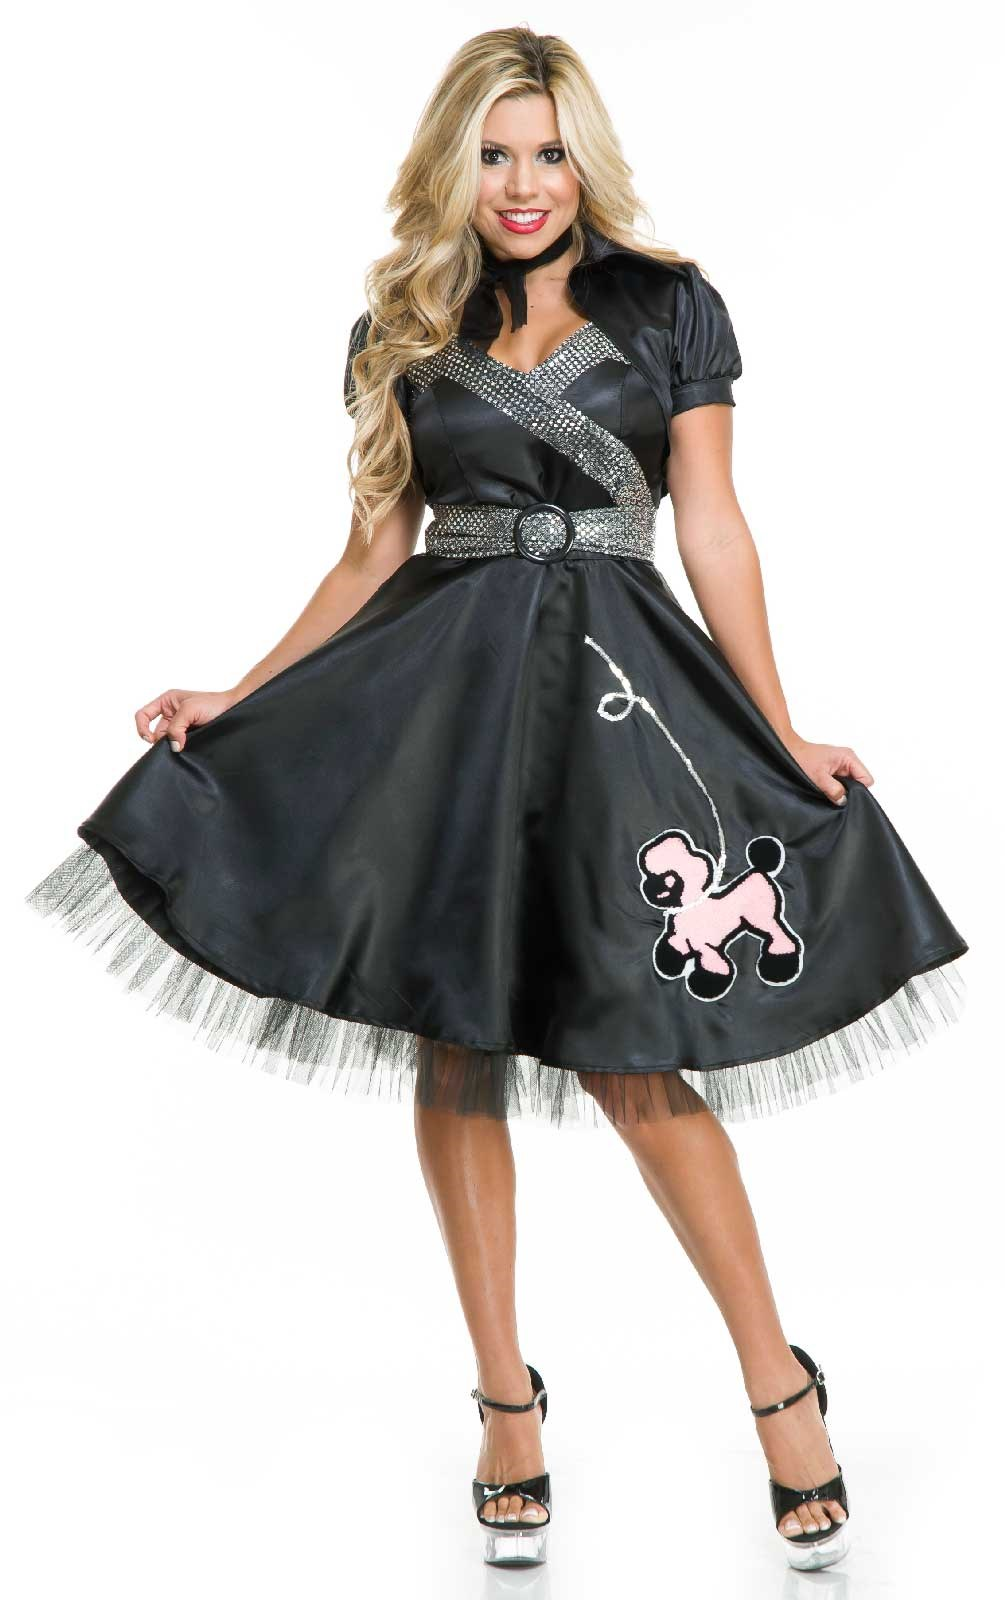 Satin Poodle Dress – Womens Costume